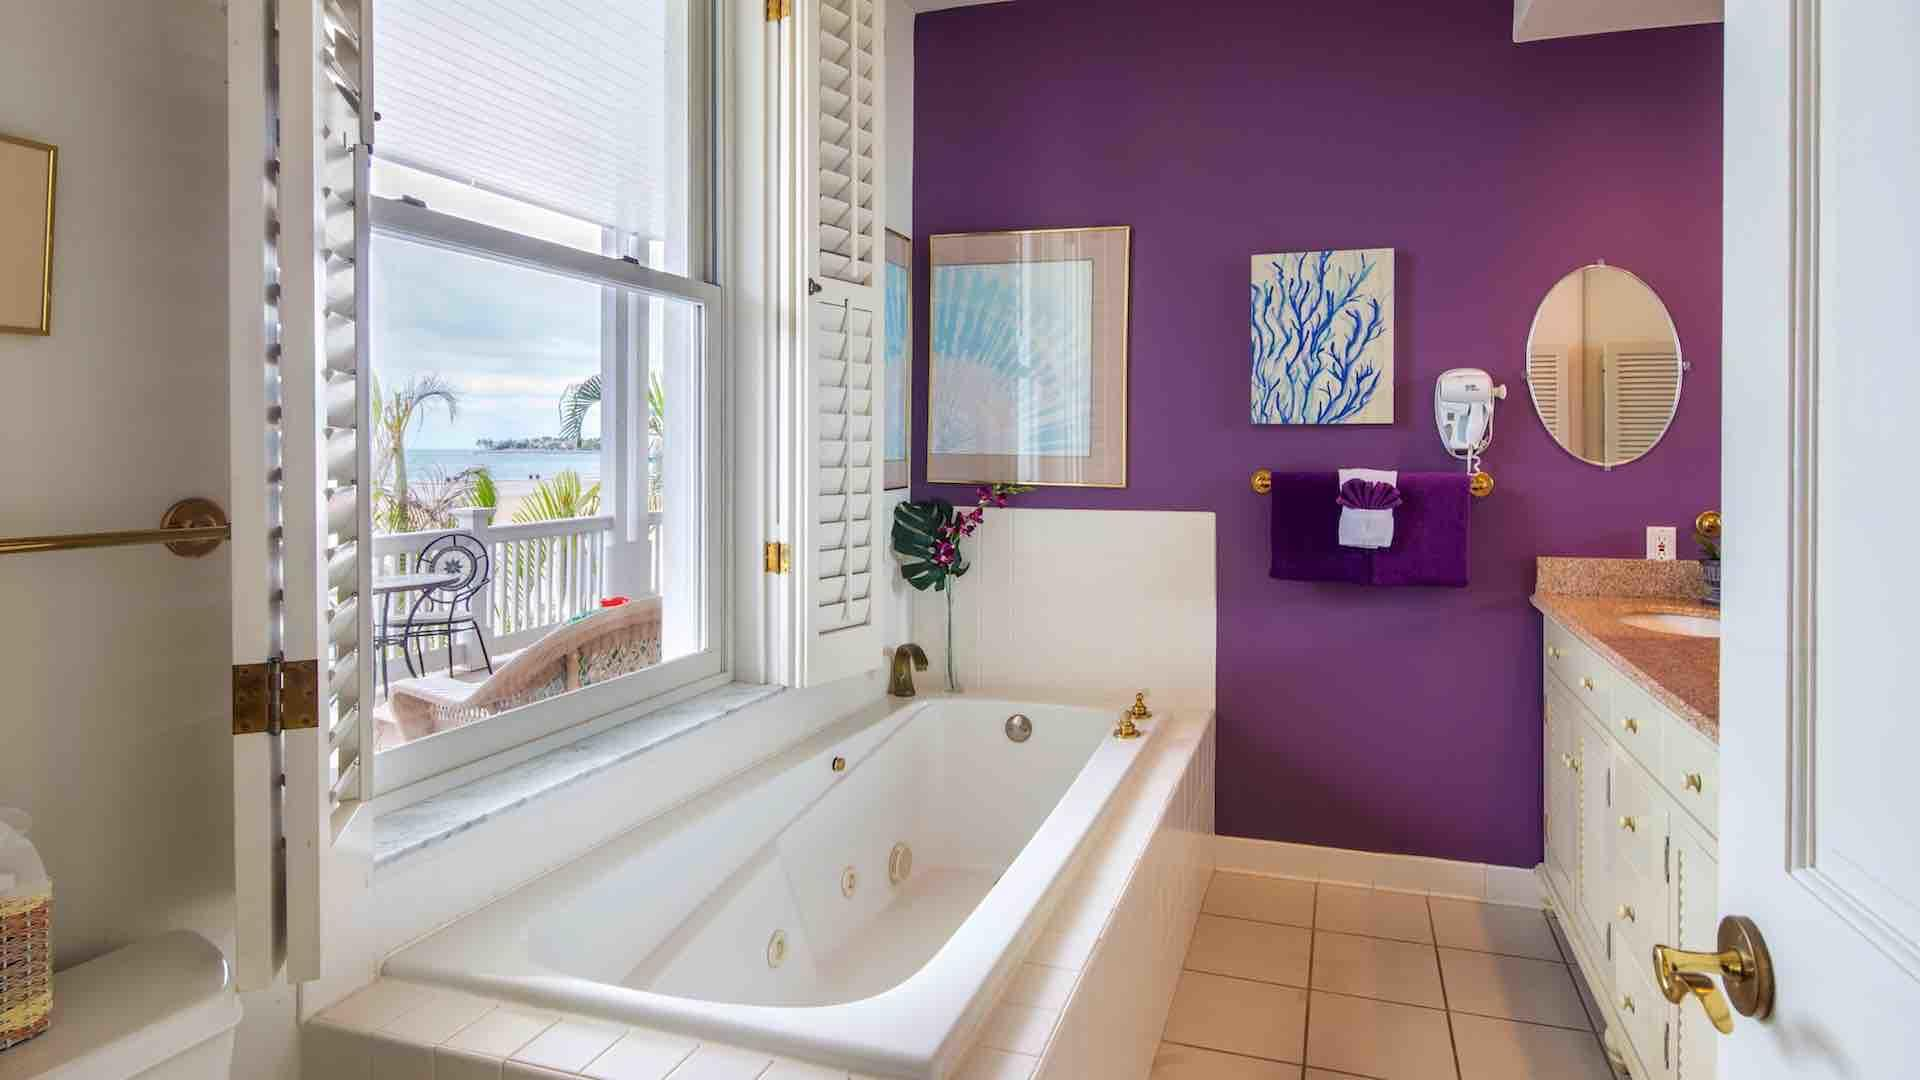 The master bathroom also has a jacuzzi-style tub...